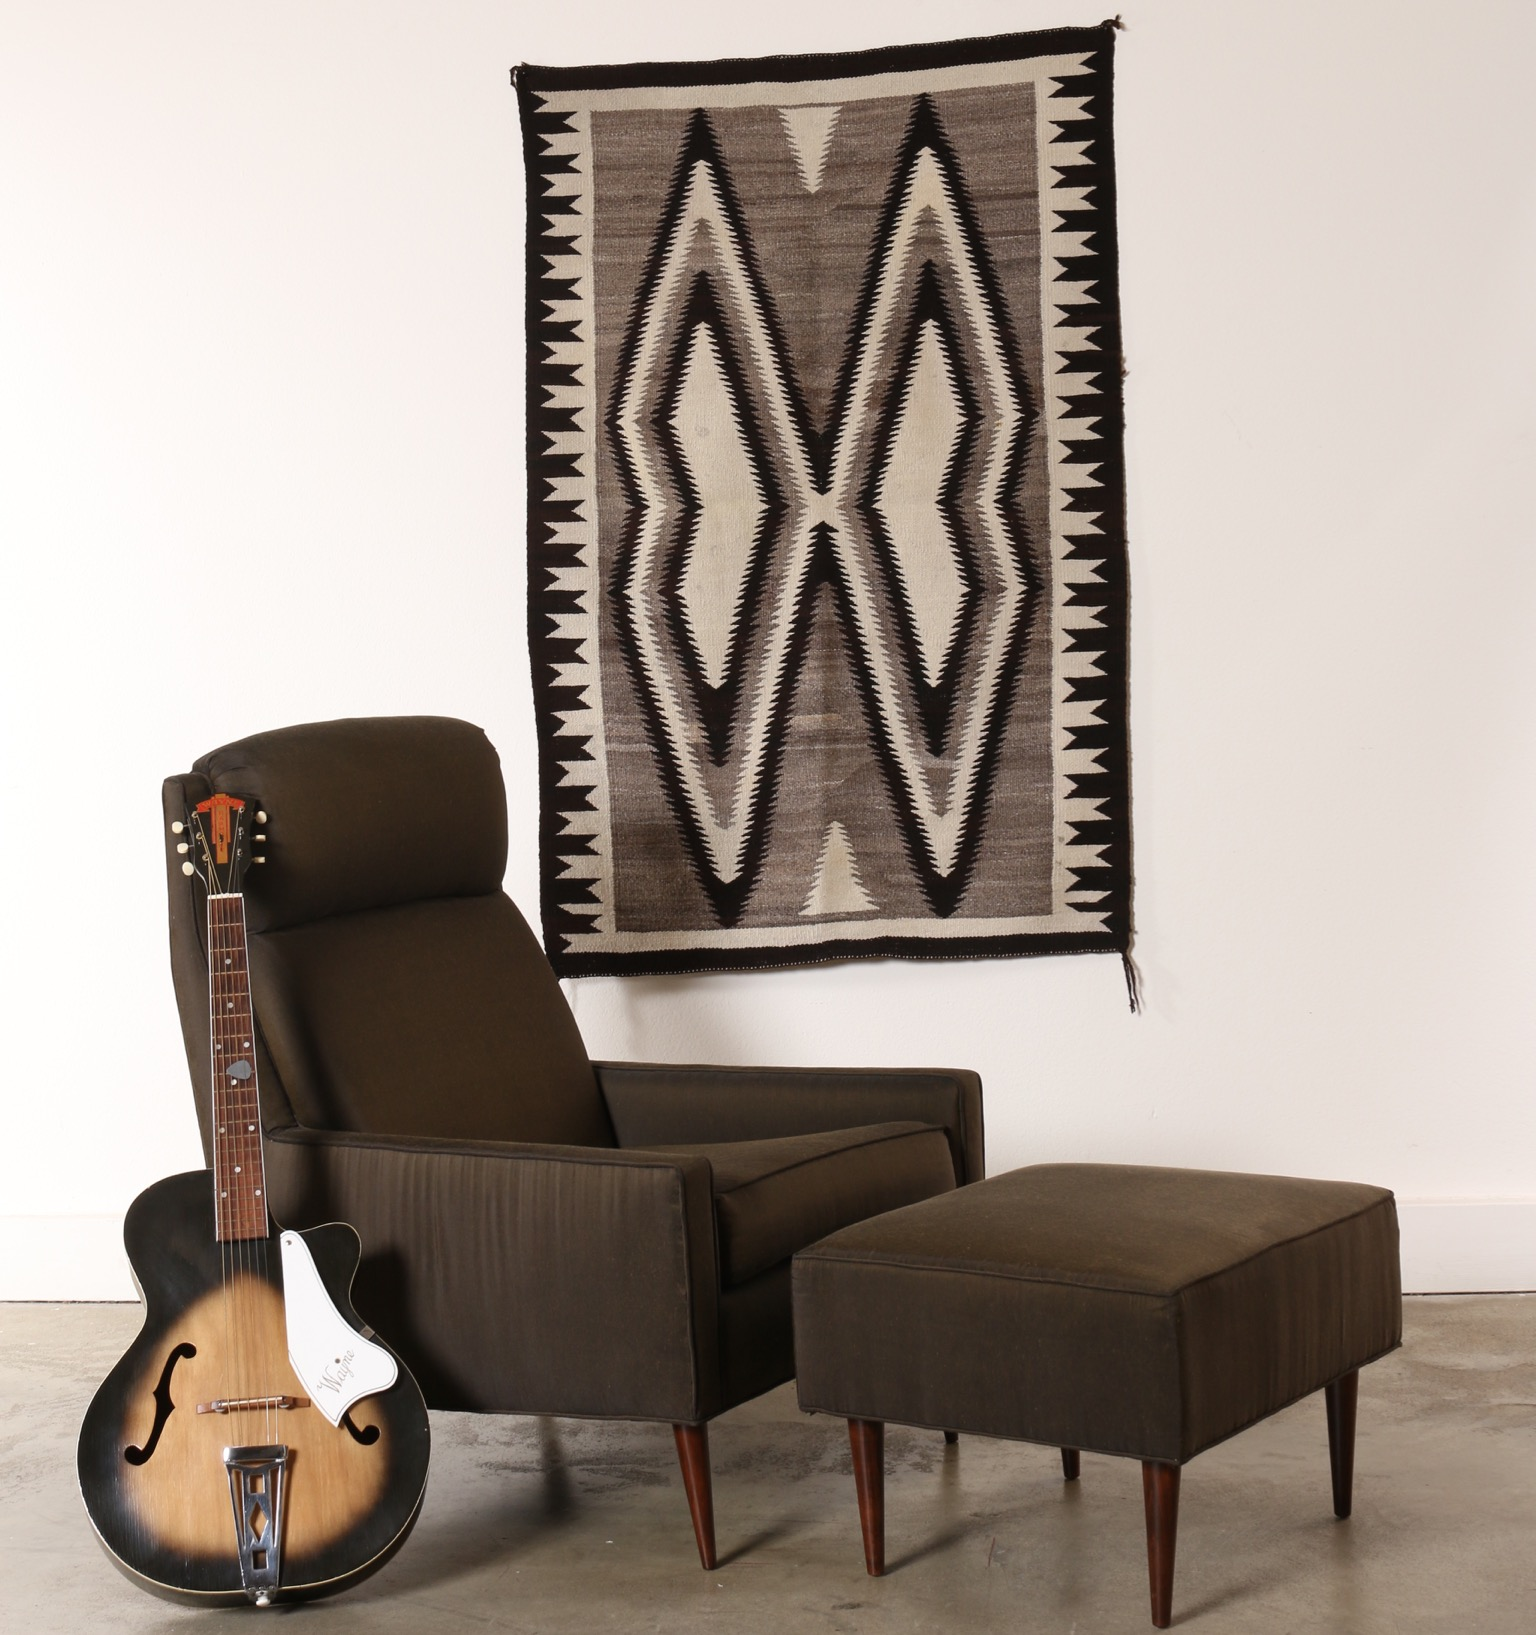 lounge chair, rug and guitar